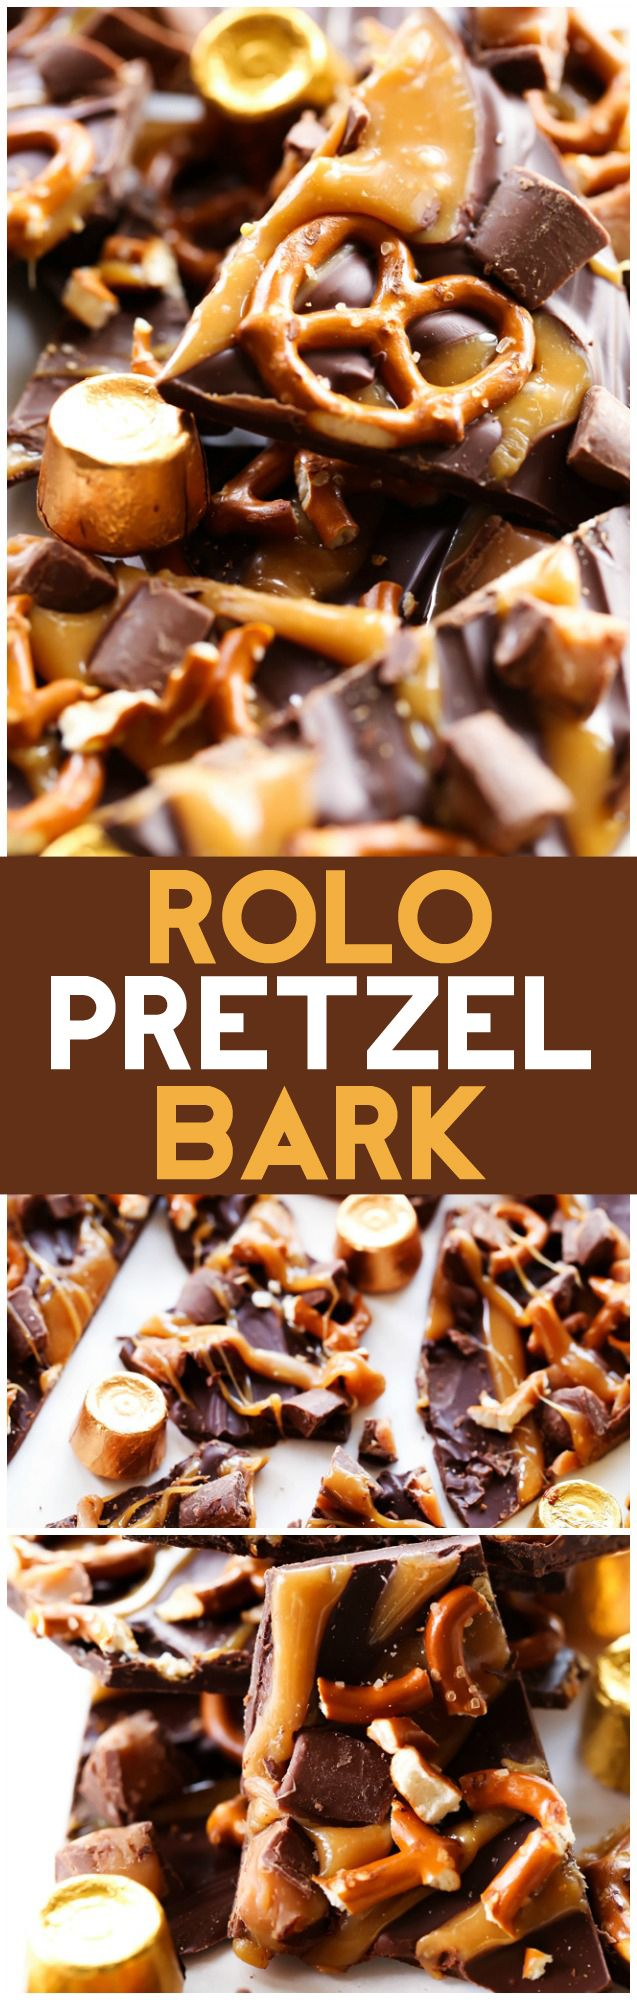 ROLO Pretzel Bark... An extremely simple yet tasty chocolate-caramel ...